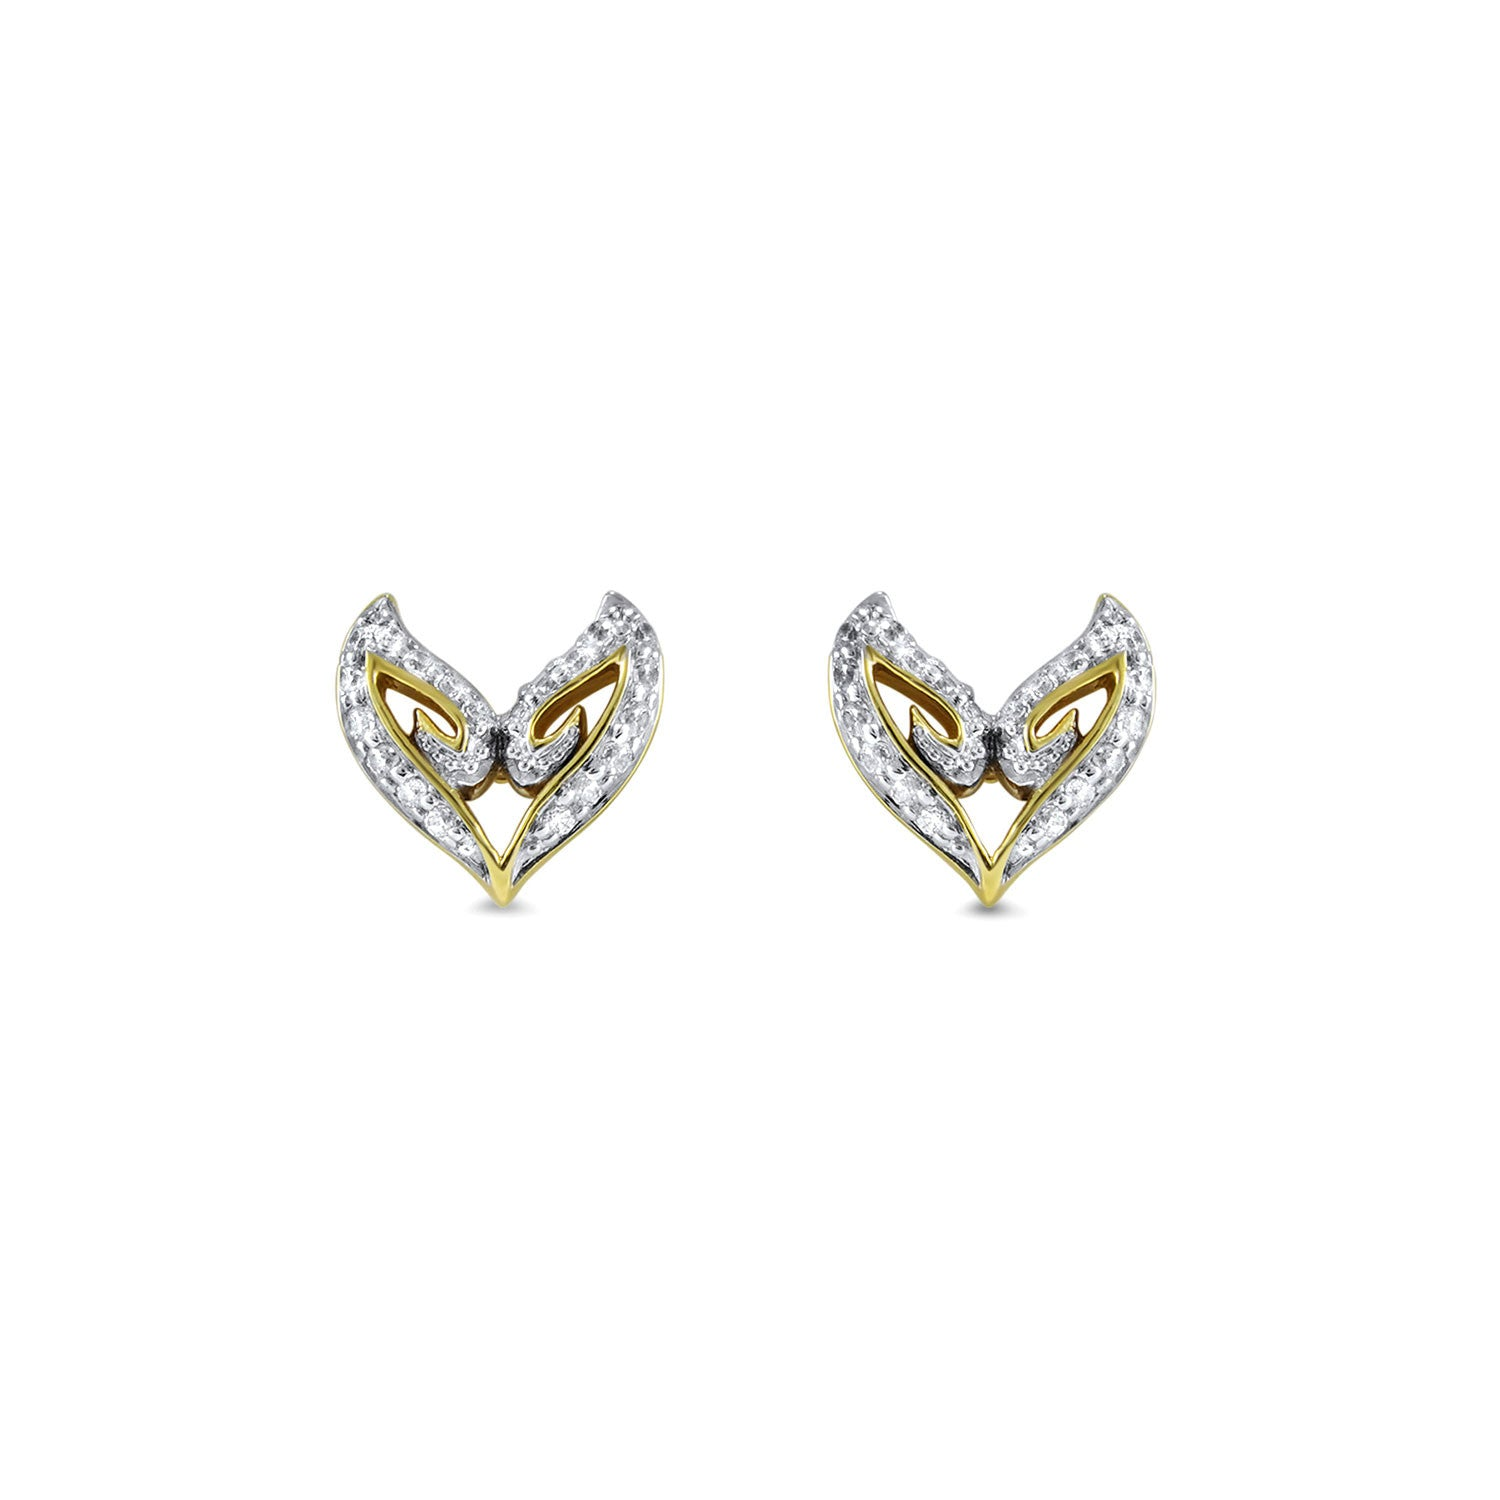 Realm Domain Vanity Pave Stud Earring bjTUi